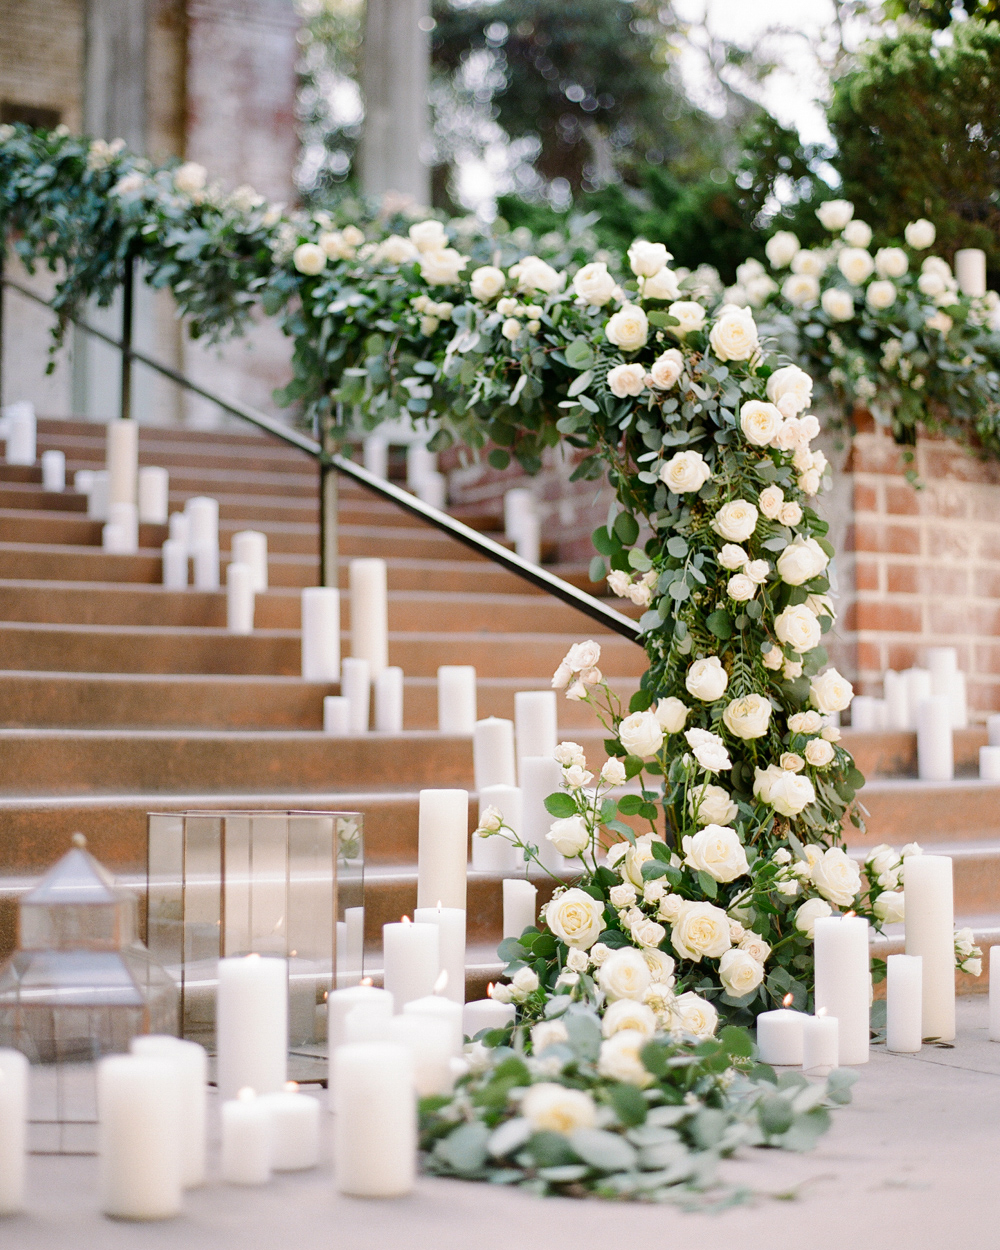 stair banister decor pillar candles